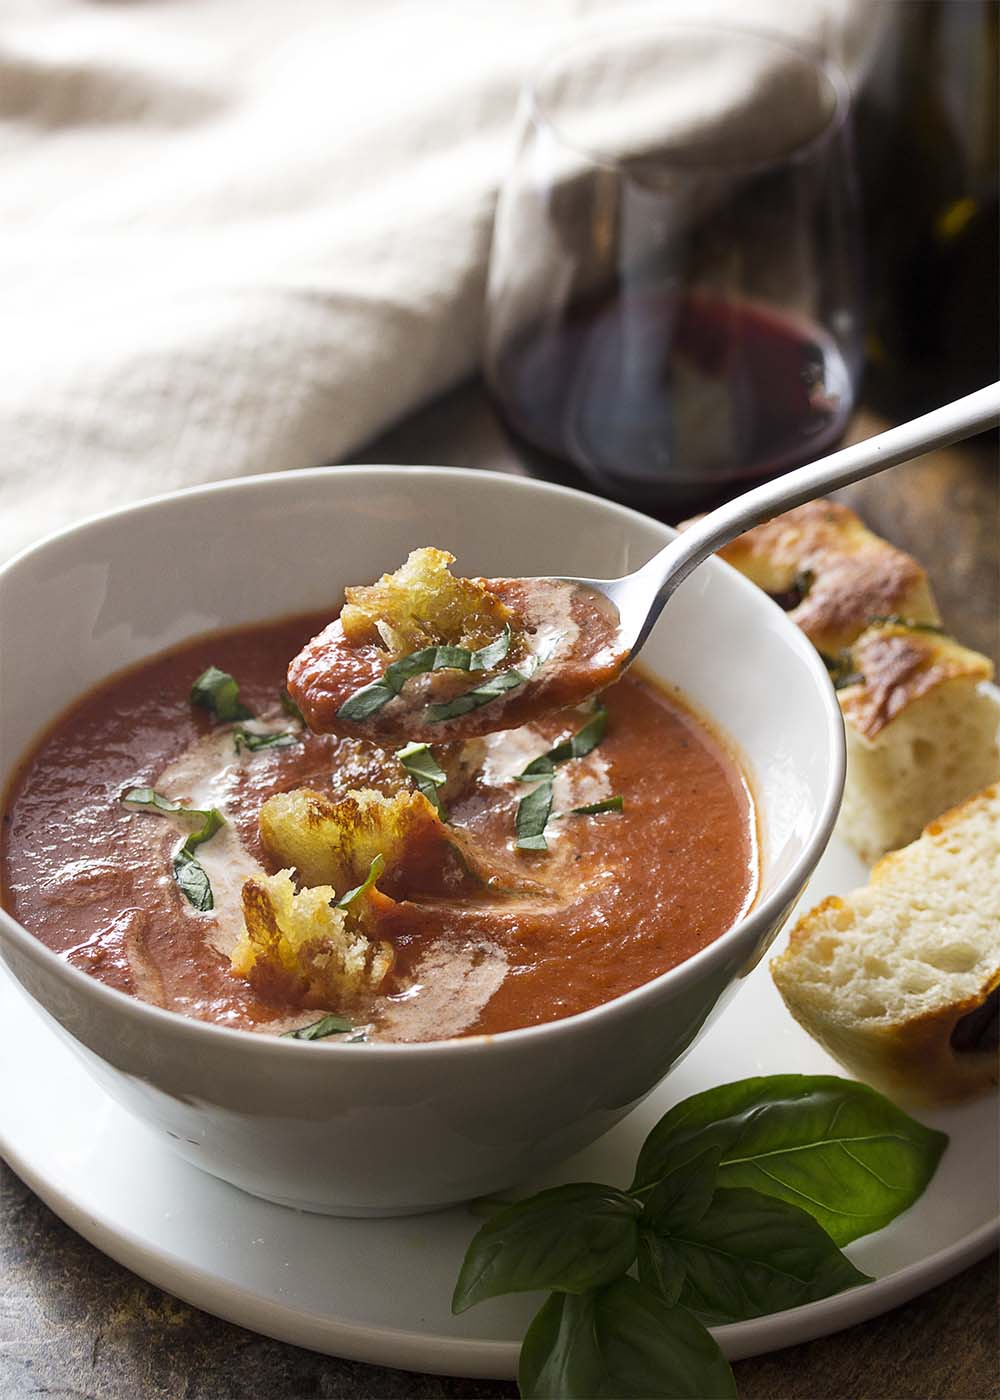 A spoon of tomato soup topped with sliced basil and a fried crouton, focaccia on the plate ready to be dipped in.